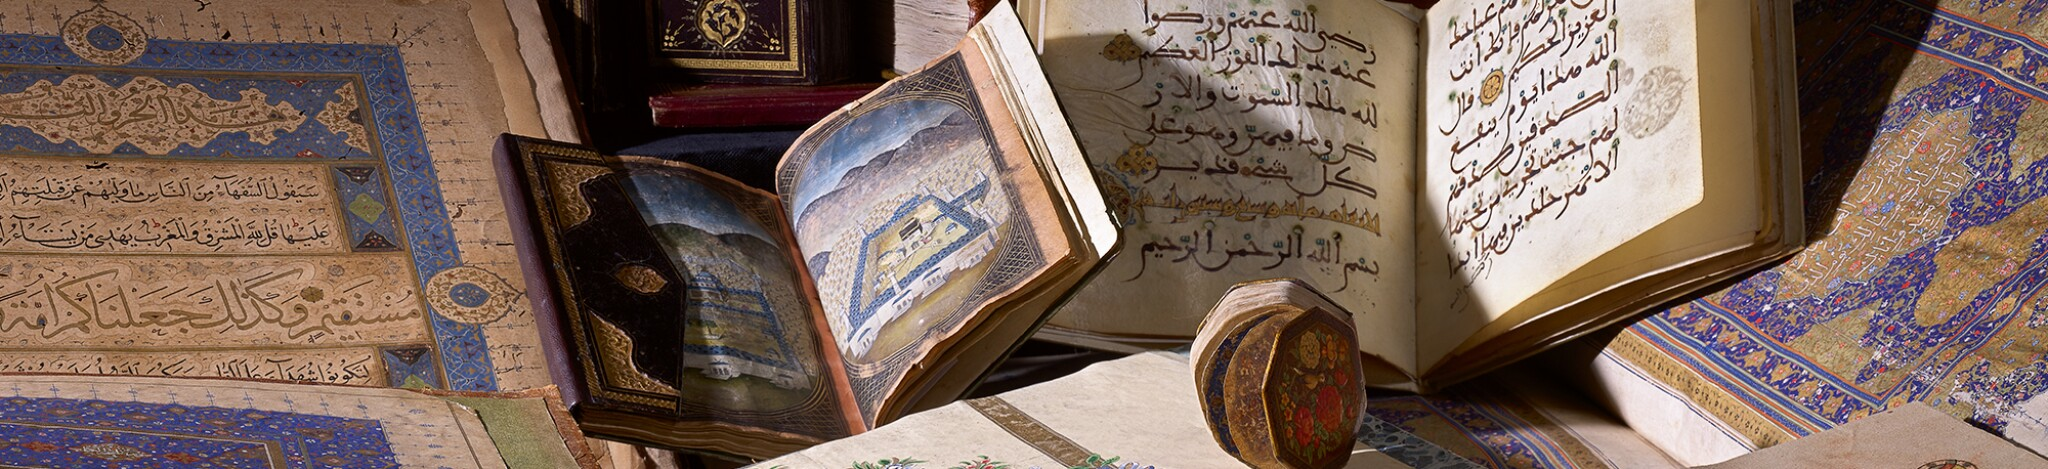 THE SHAKERINE COLLECTION: Calligraphy in Qur'ans and other Manuscripts